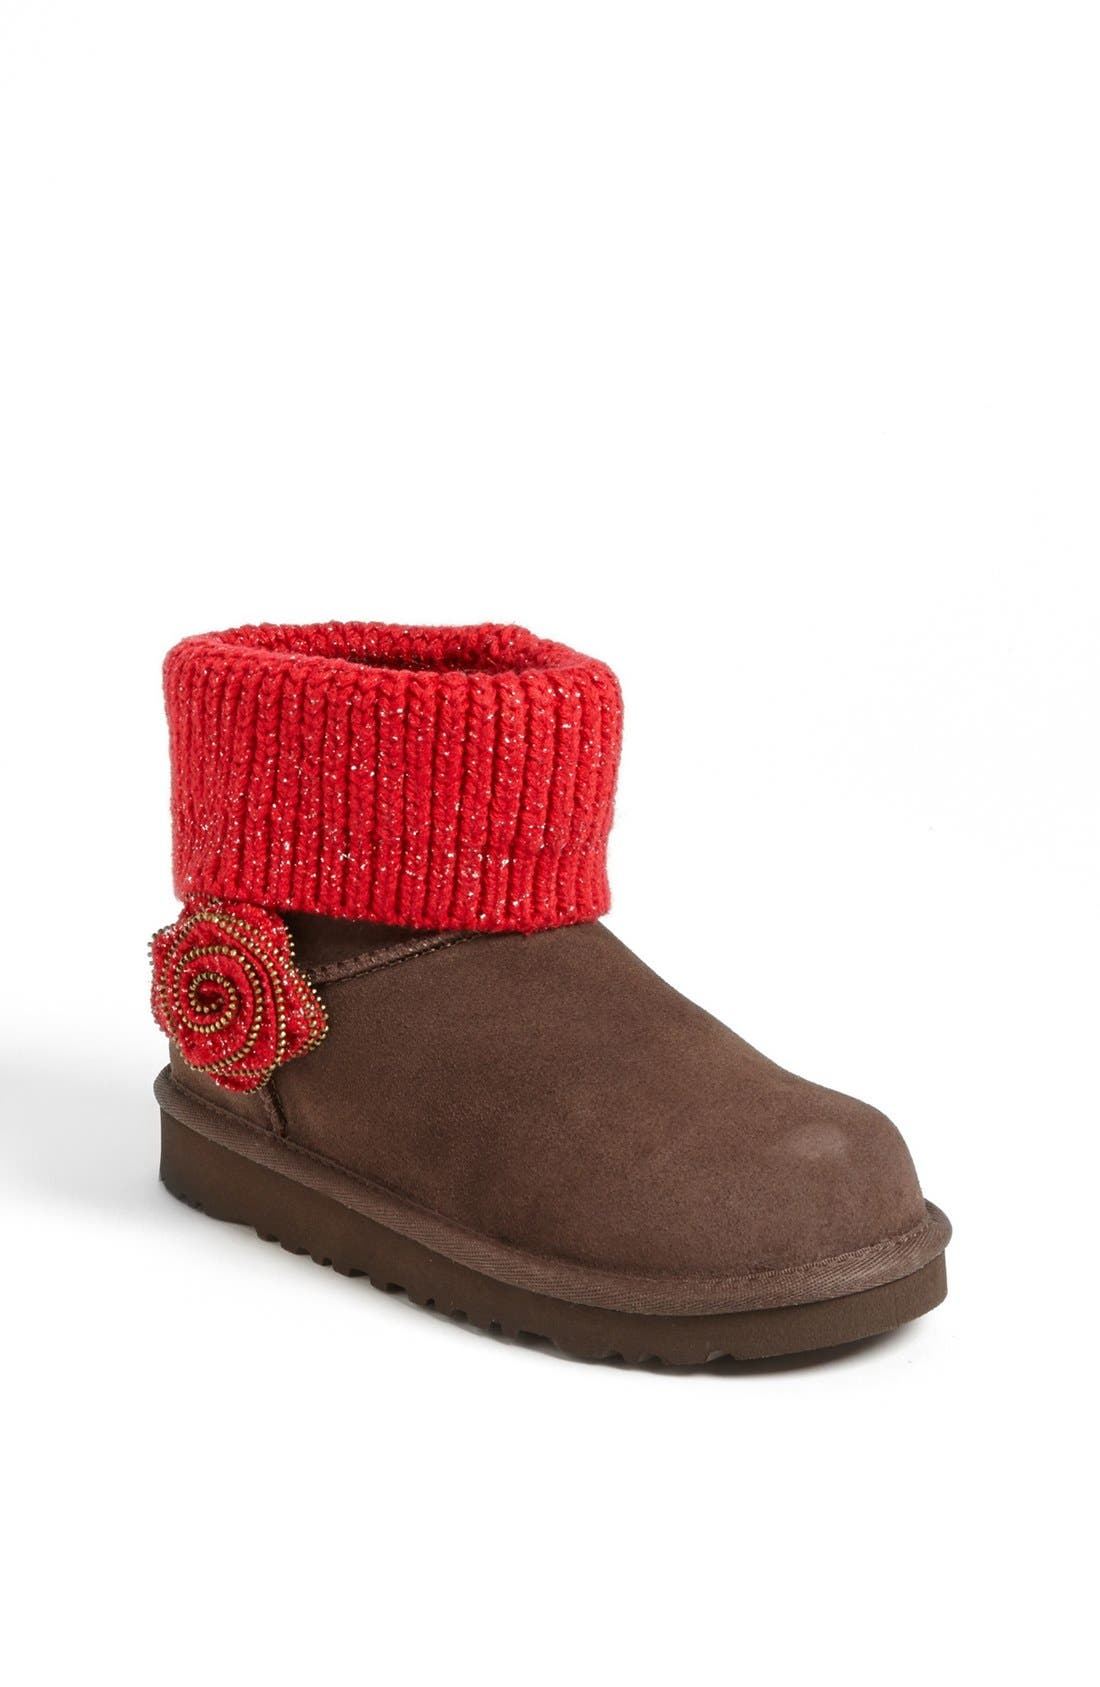 Alternate Image 1 Selected - UGG® Australia 'Southern Belle' Boot (Little Kids & Big Kids)